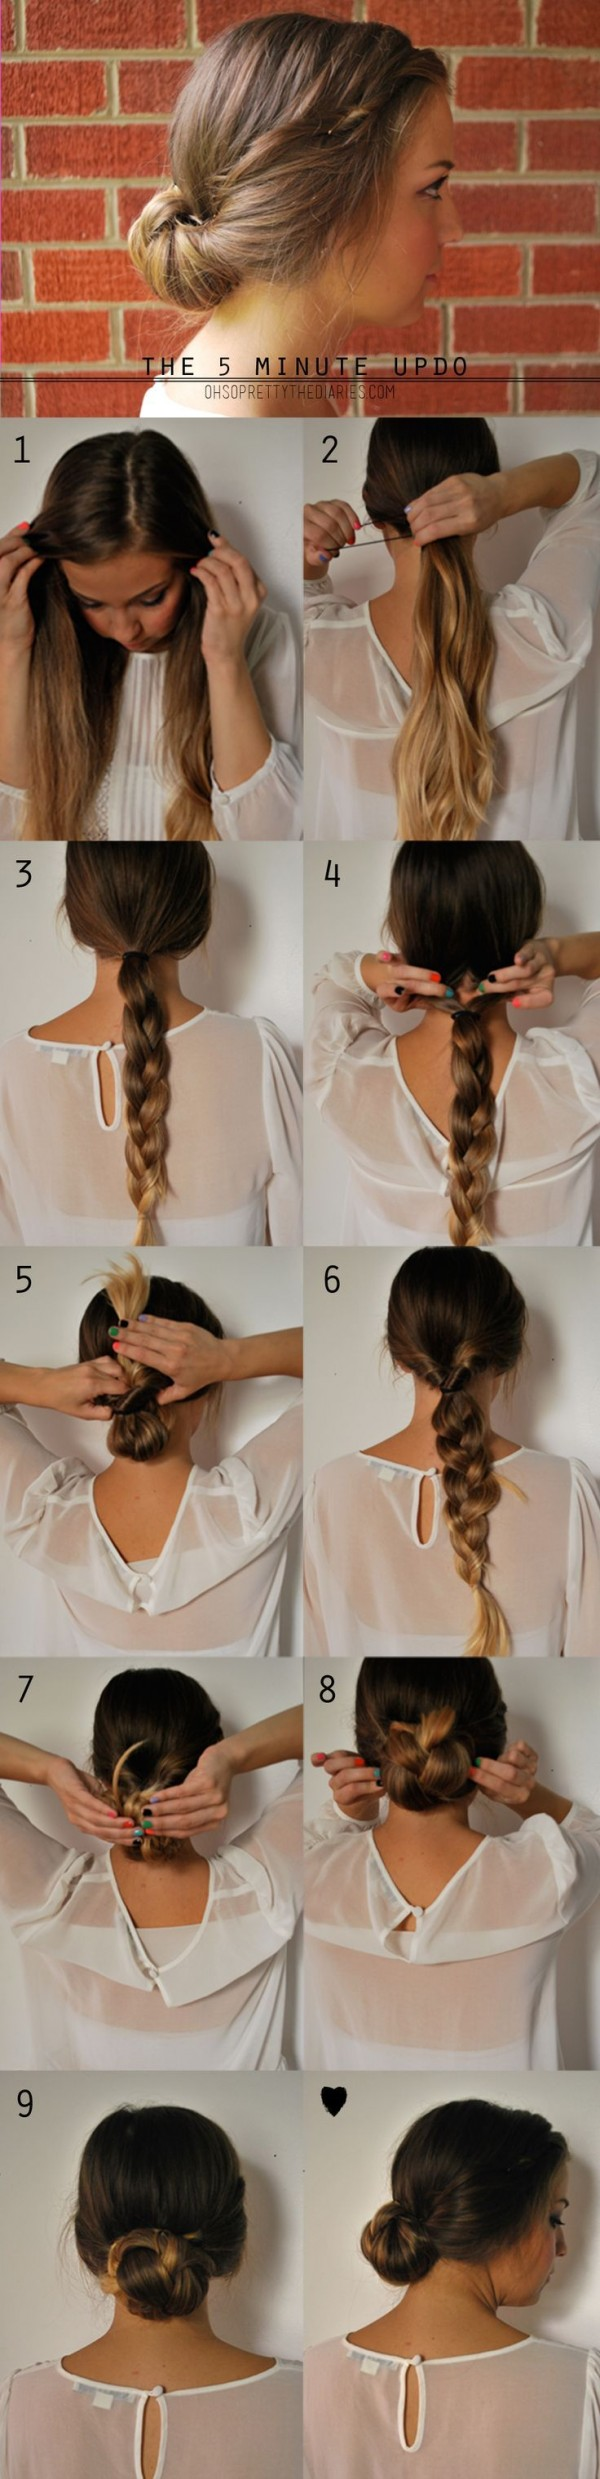 5 minutes hairstyles3